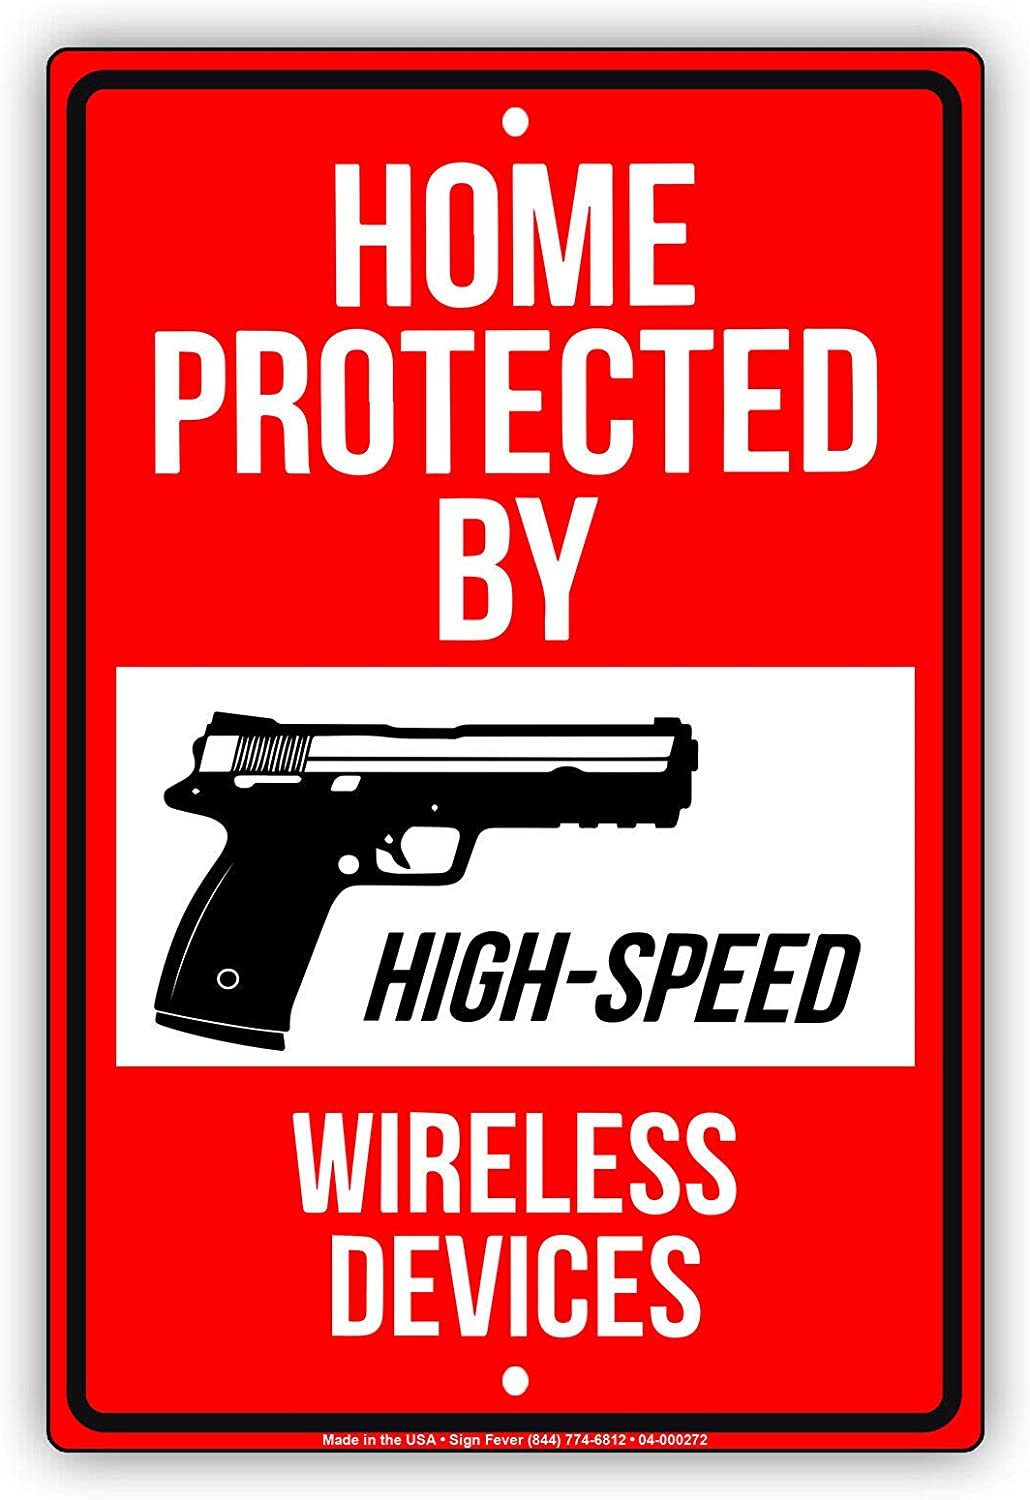 """Afterprints Home Protected by High Speed Wireless Devices for Safety Notice Caution Unique Aluminum Metal Sign 8""""x12"""""""